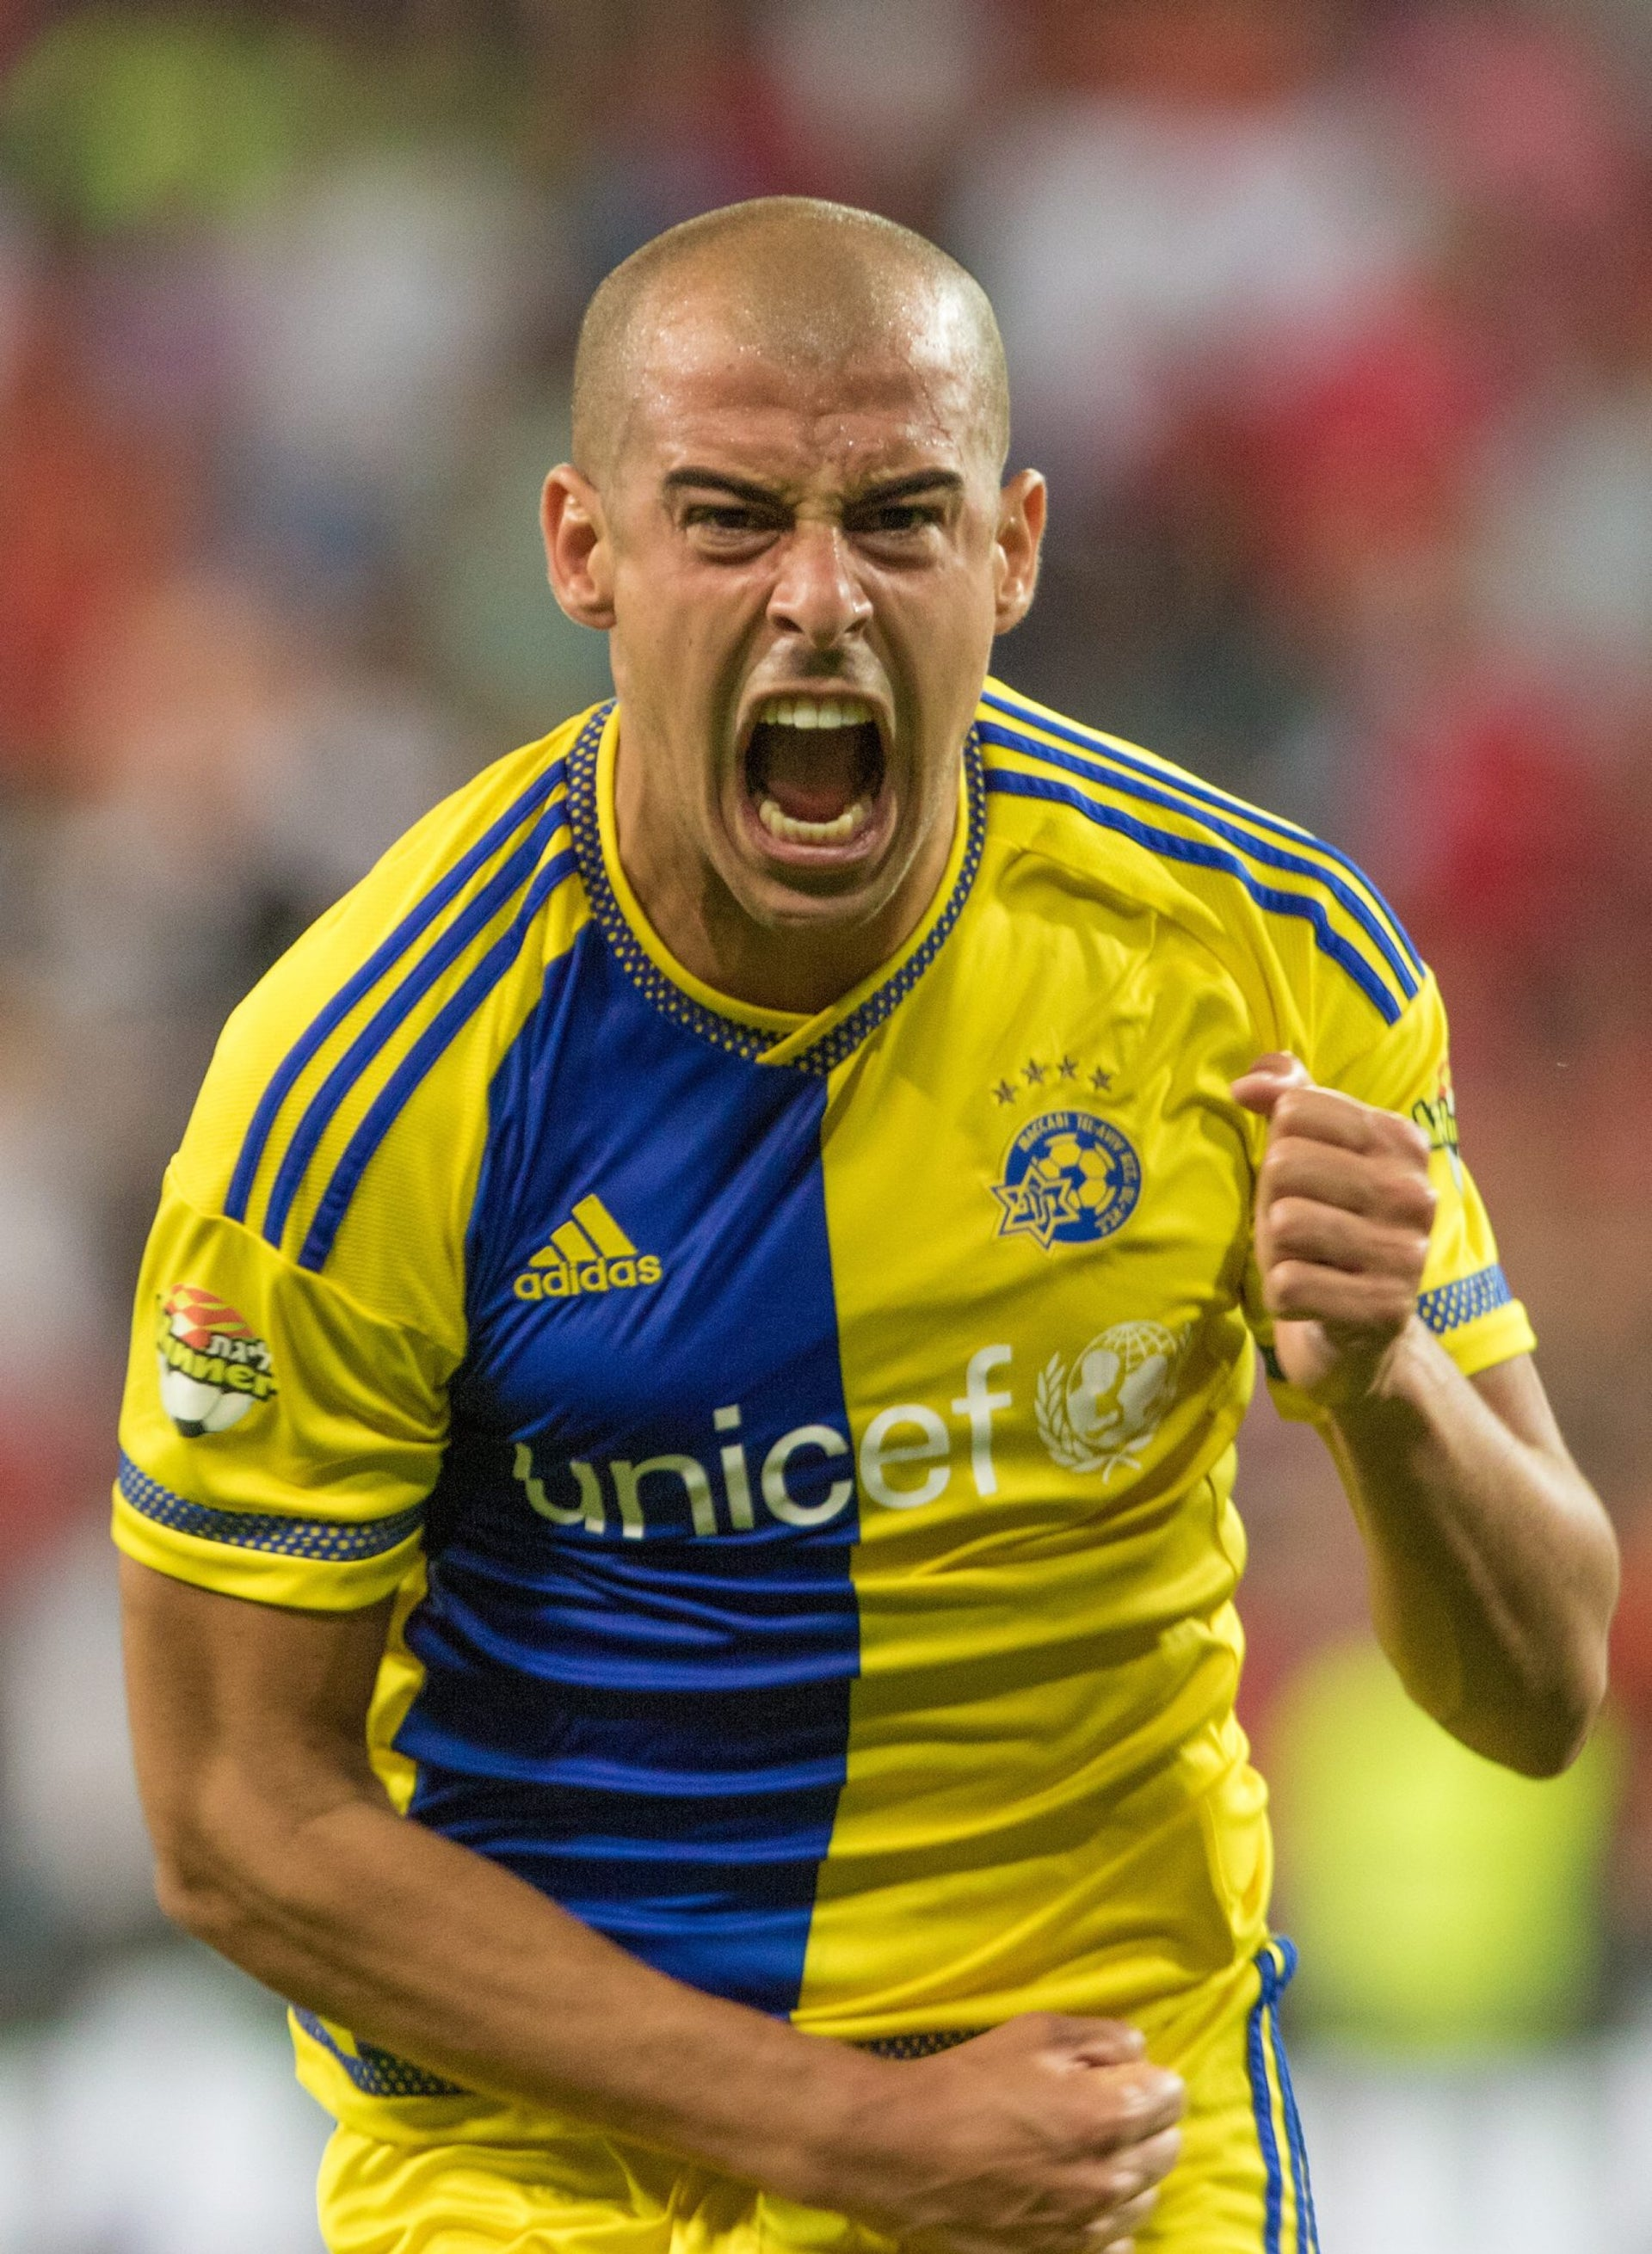 Tal Ben Haim sends Maccabi Tel Aviv to the finals for Israel's state cup.